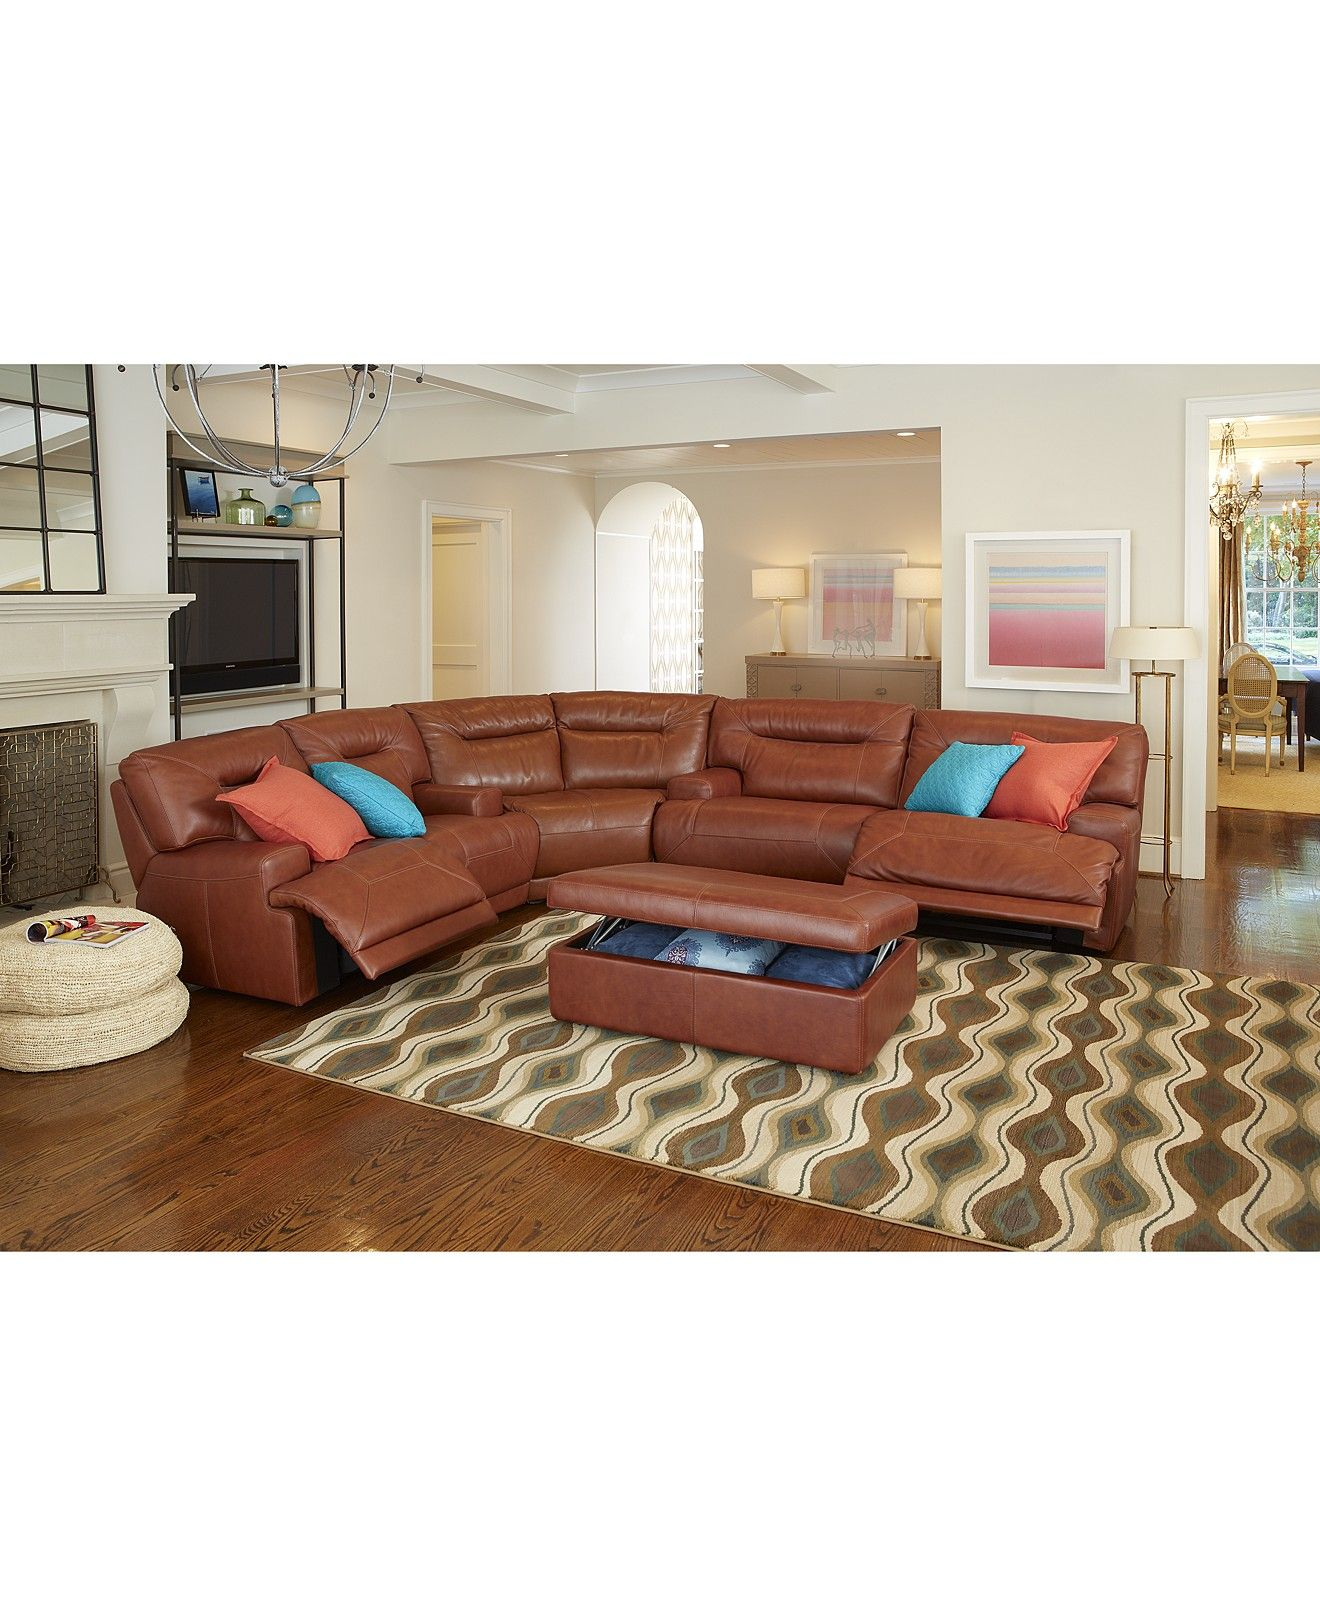 Leather Sectional Living Room Furniture Ricardo Leather Sectional Living Room Furniture Collection Power